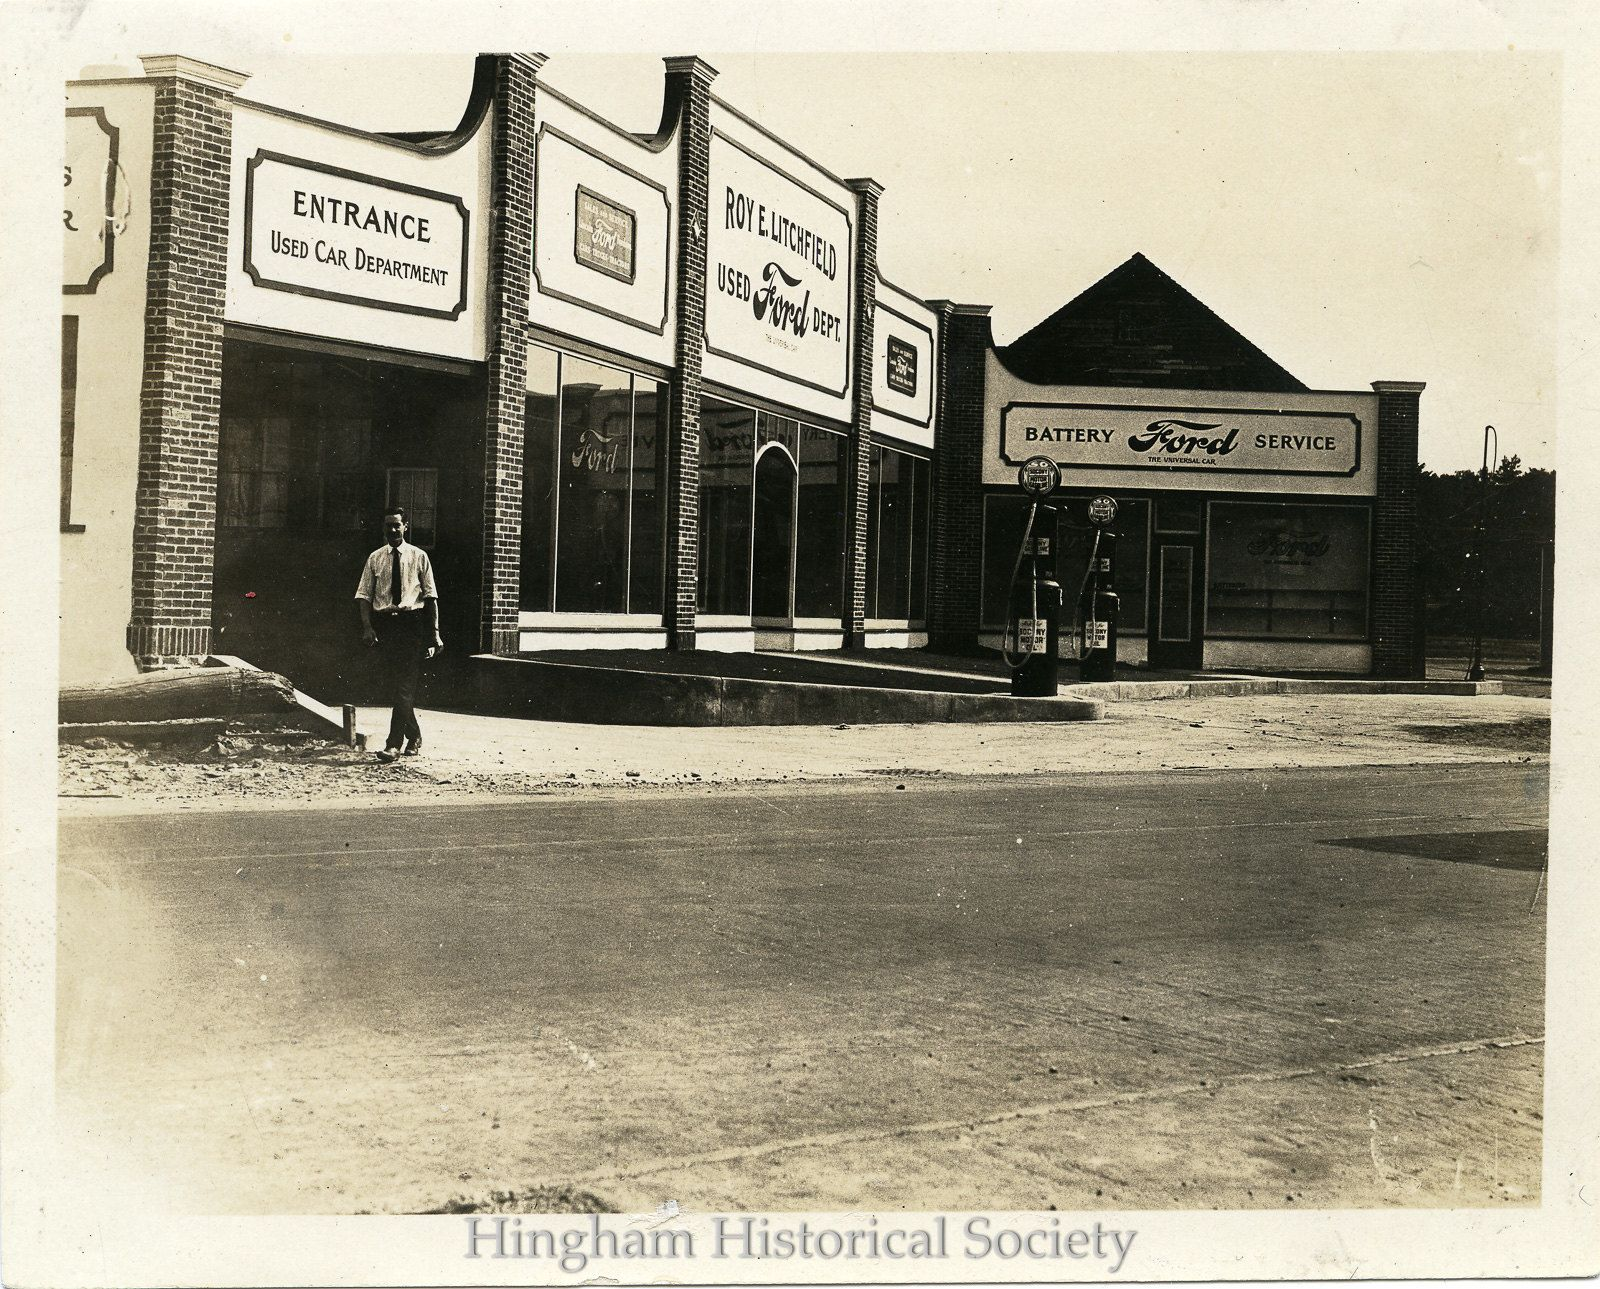 roy e litchfield s ford dealership in 2020 litchfield hingham historical society pinterest